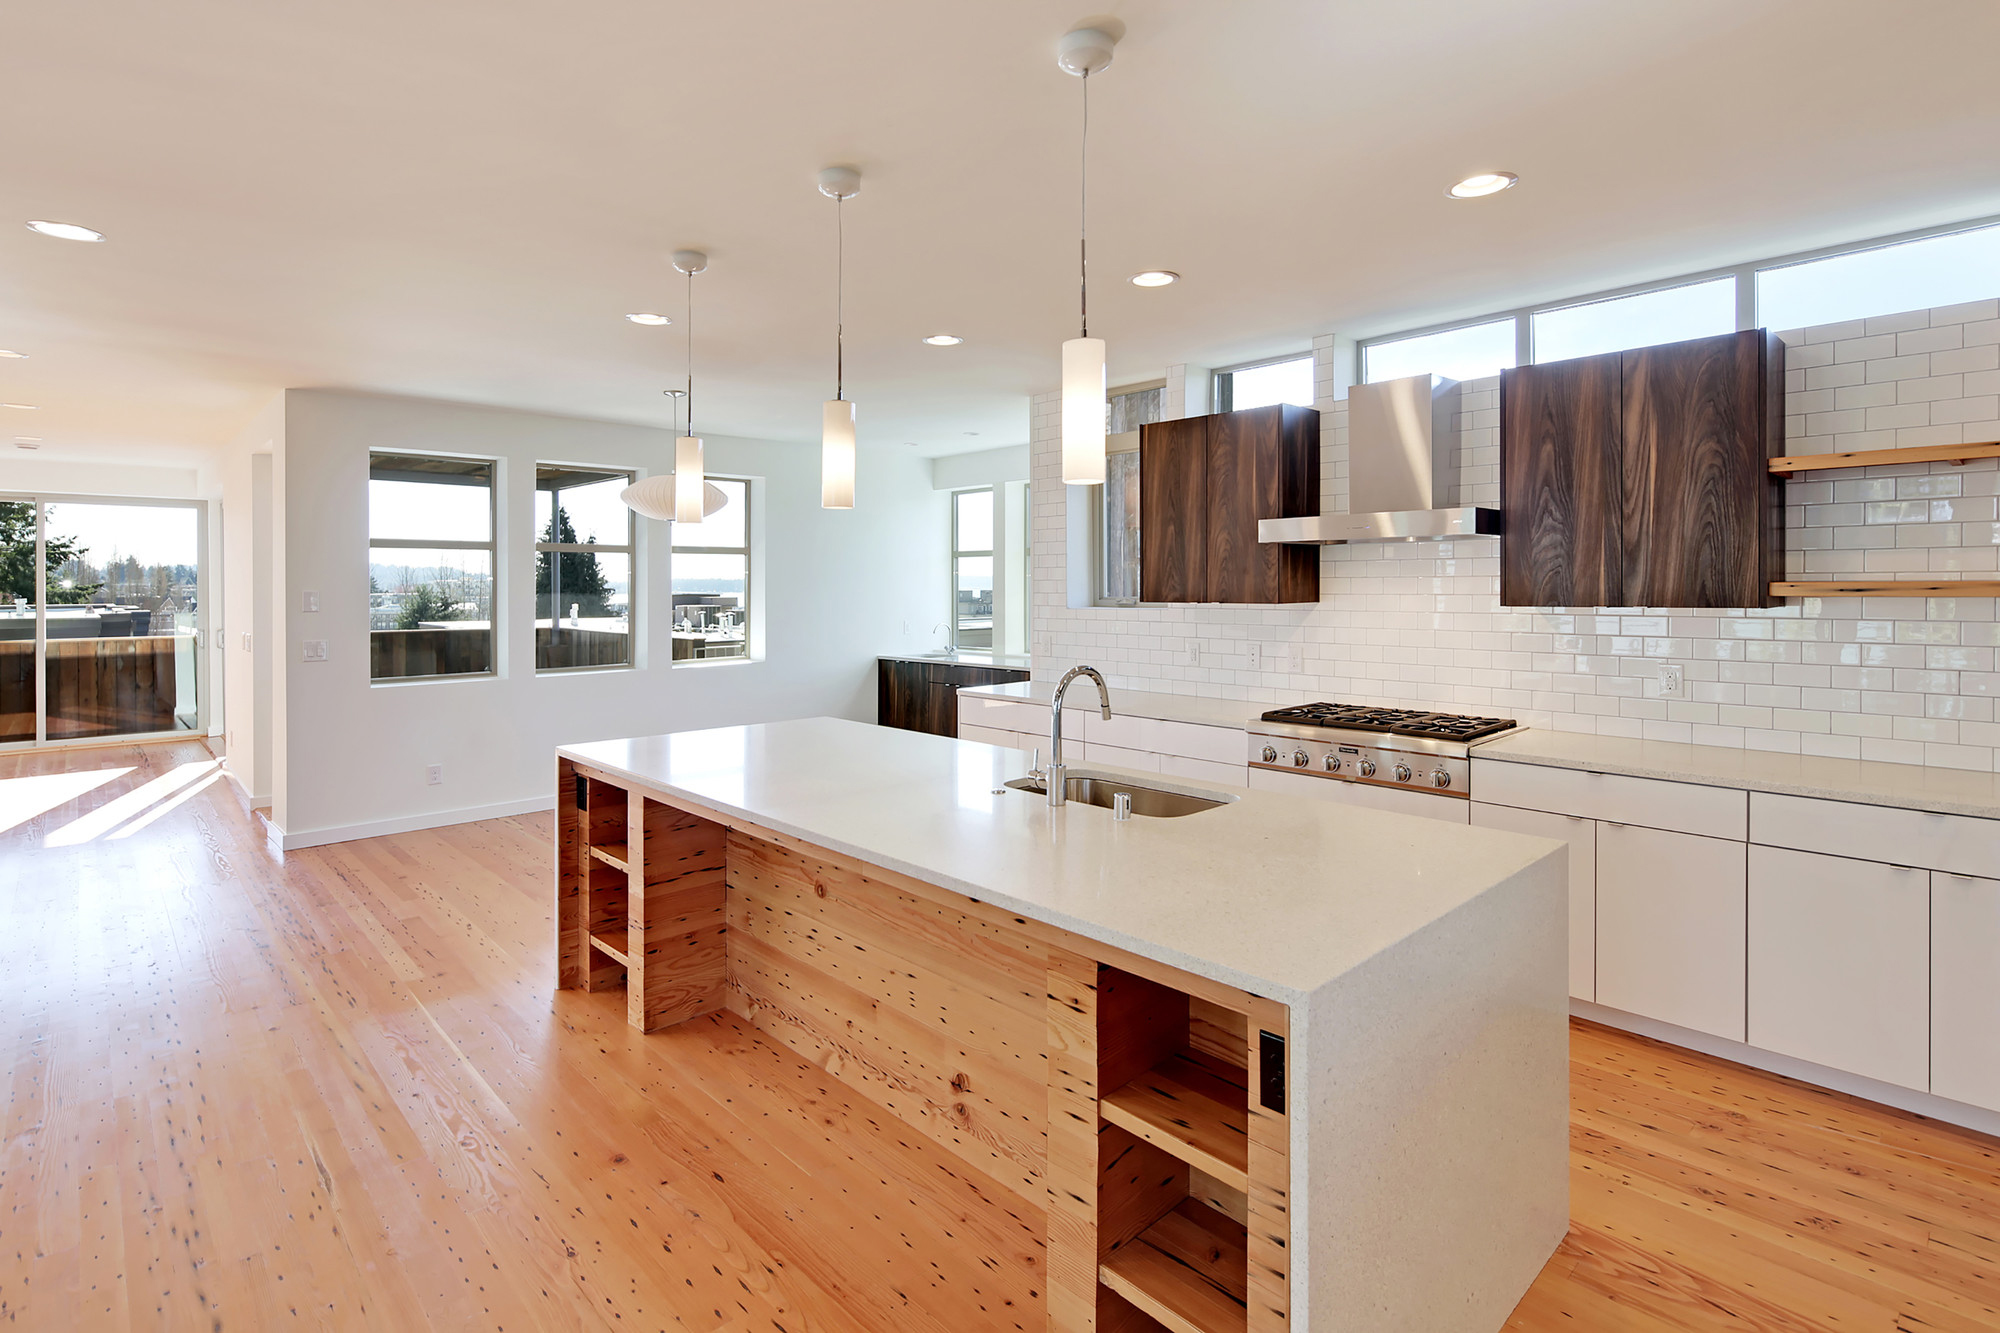 Modern Kitchen with Wood Shelves and Quartz Countertop